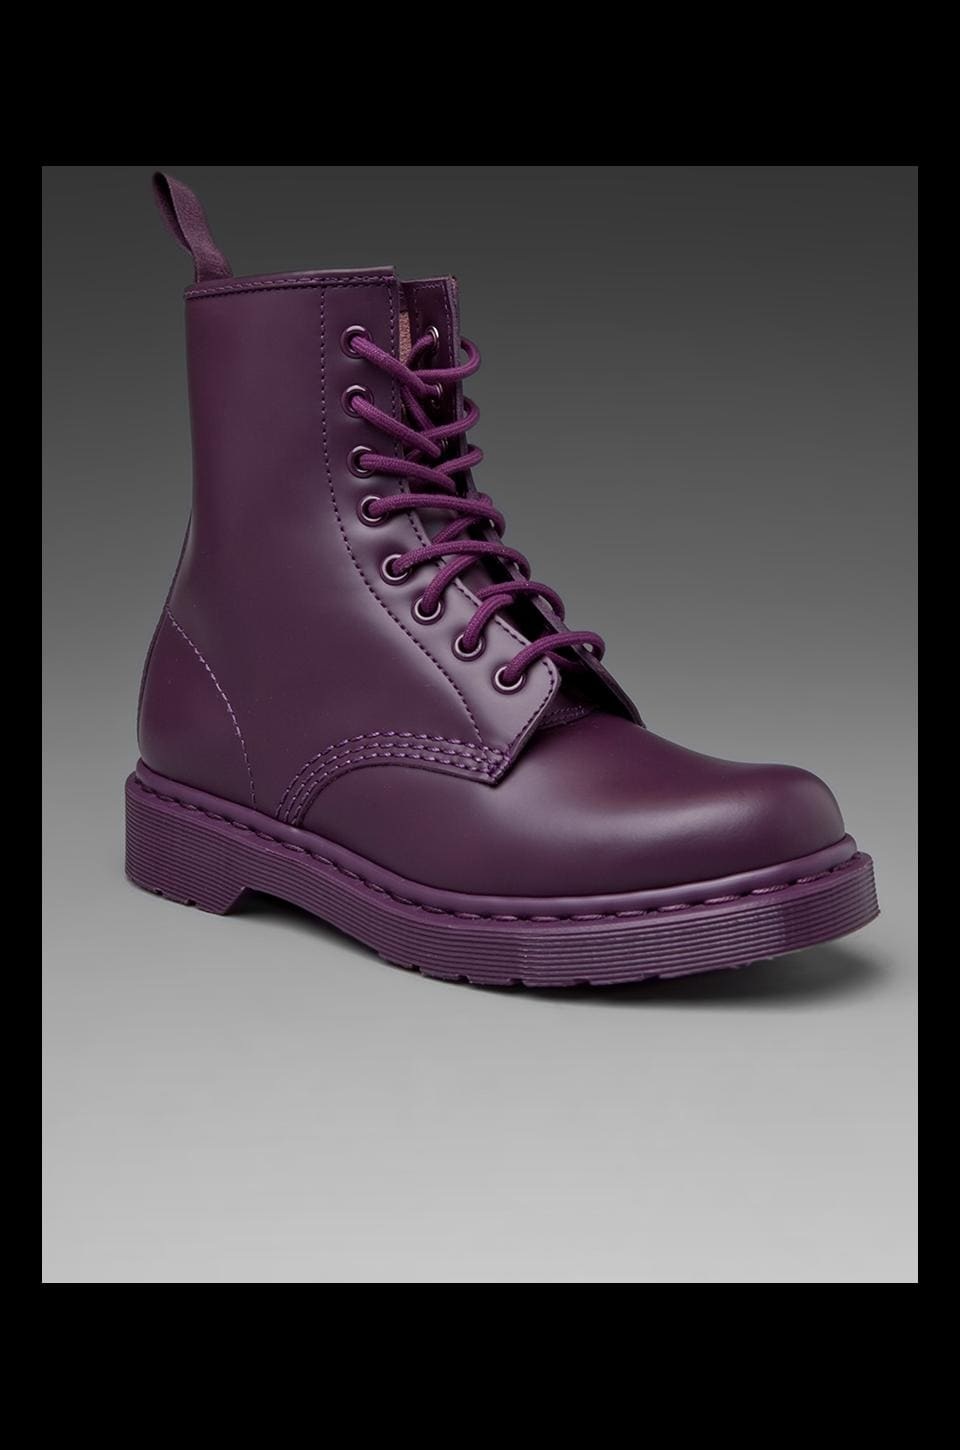 Dr. Martens 1460 8-Tie Boot in Purple